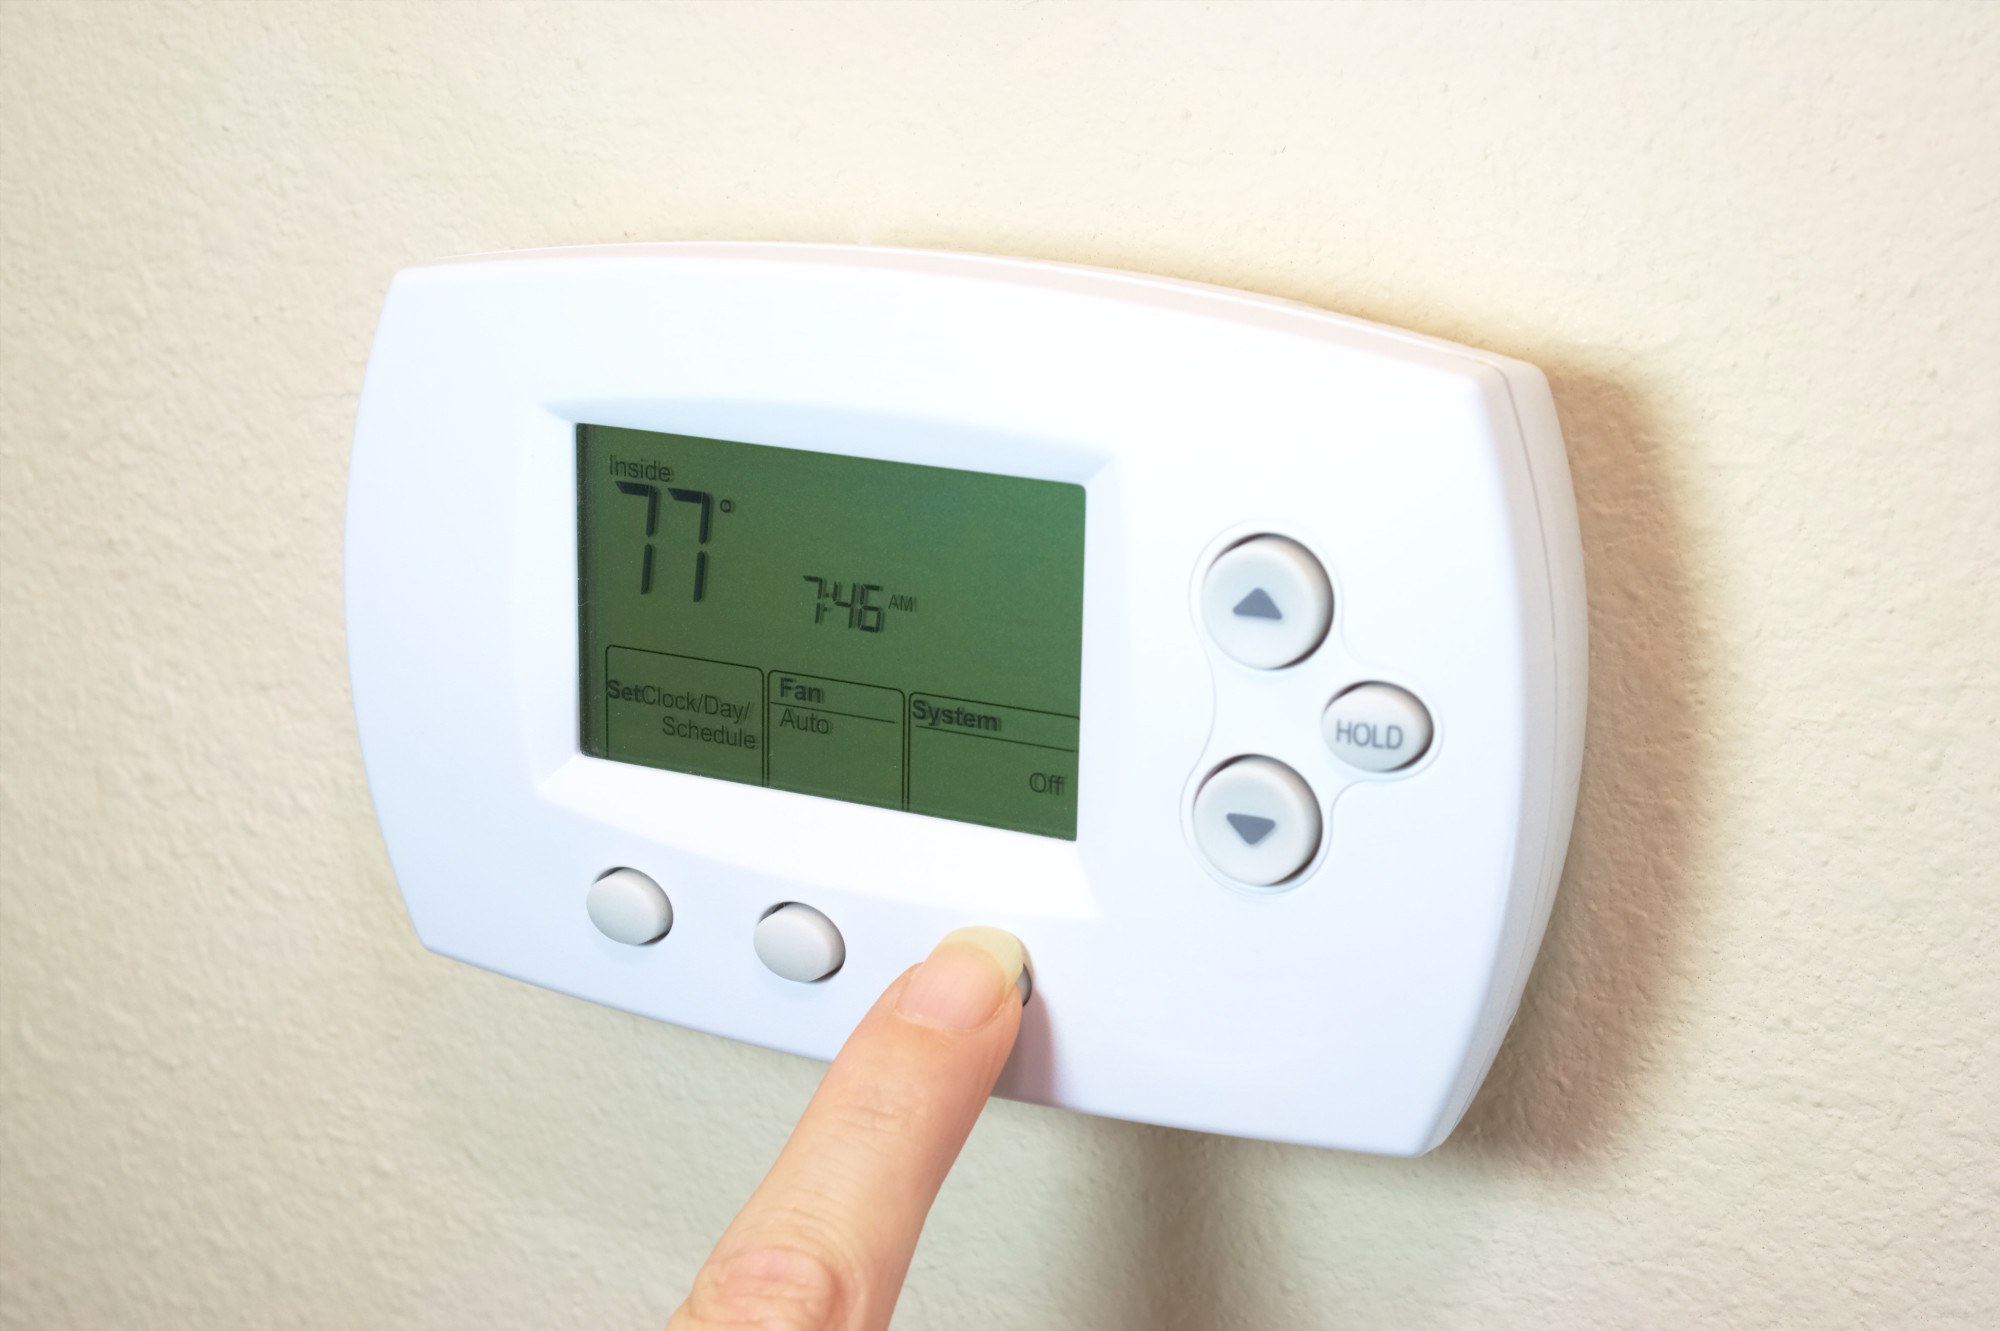 thermostat settings